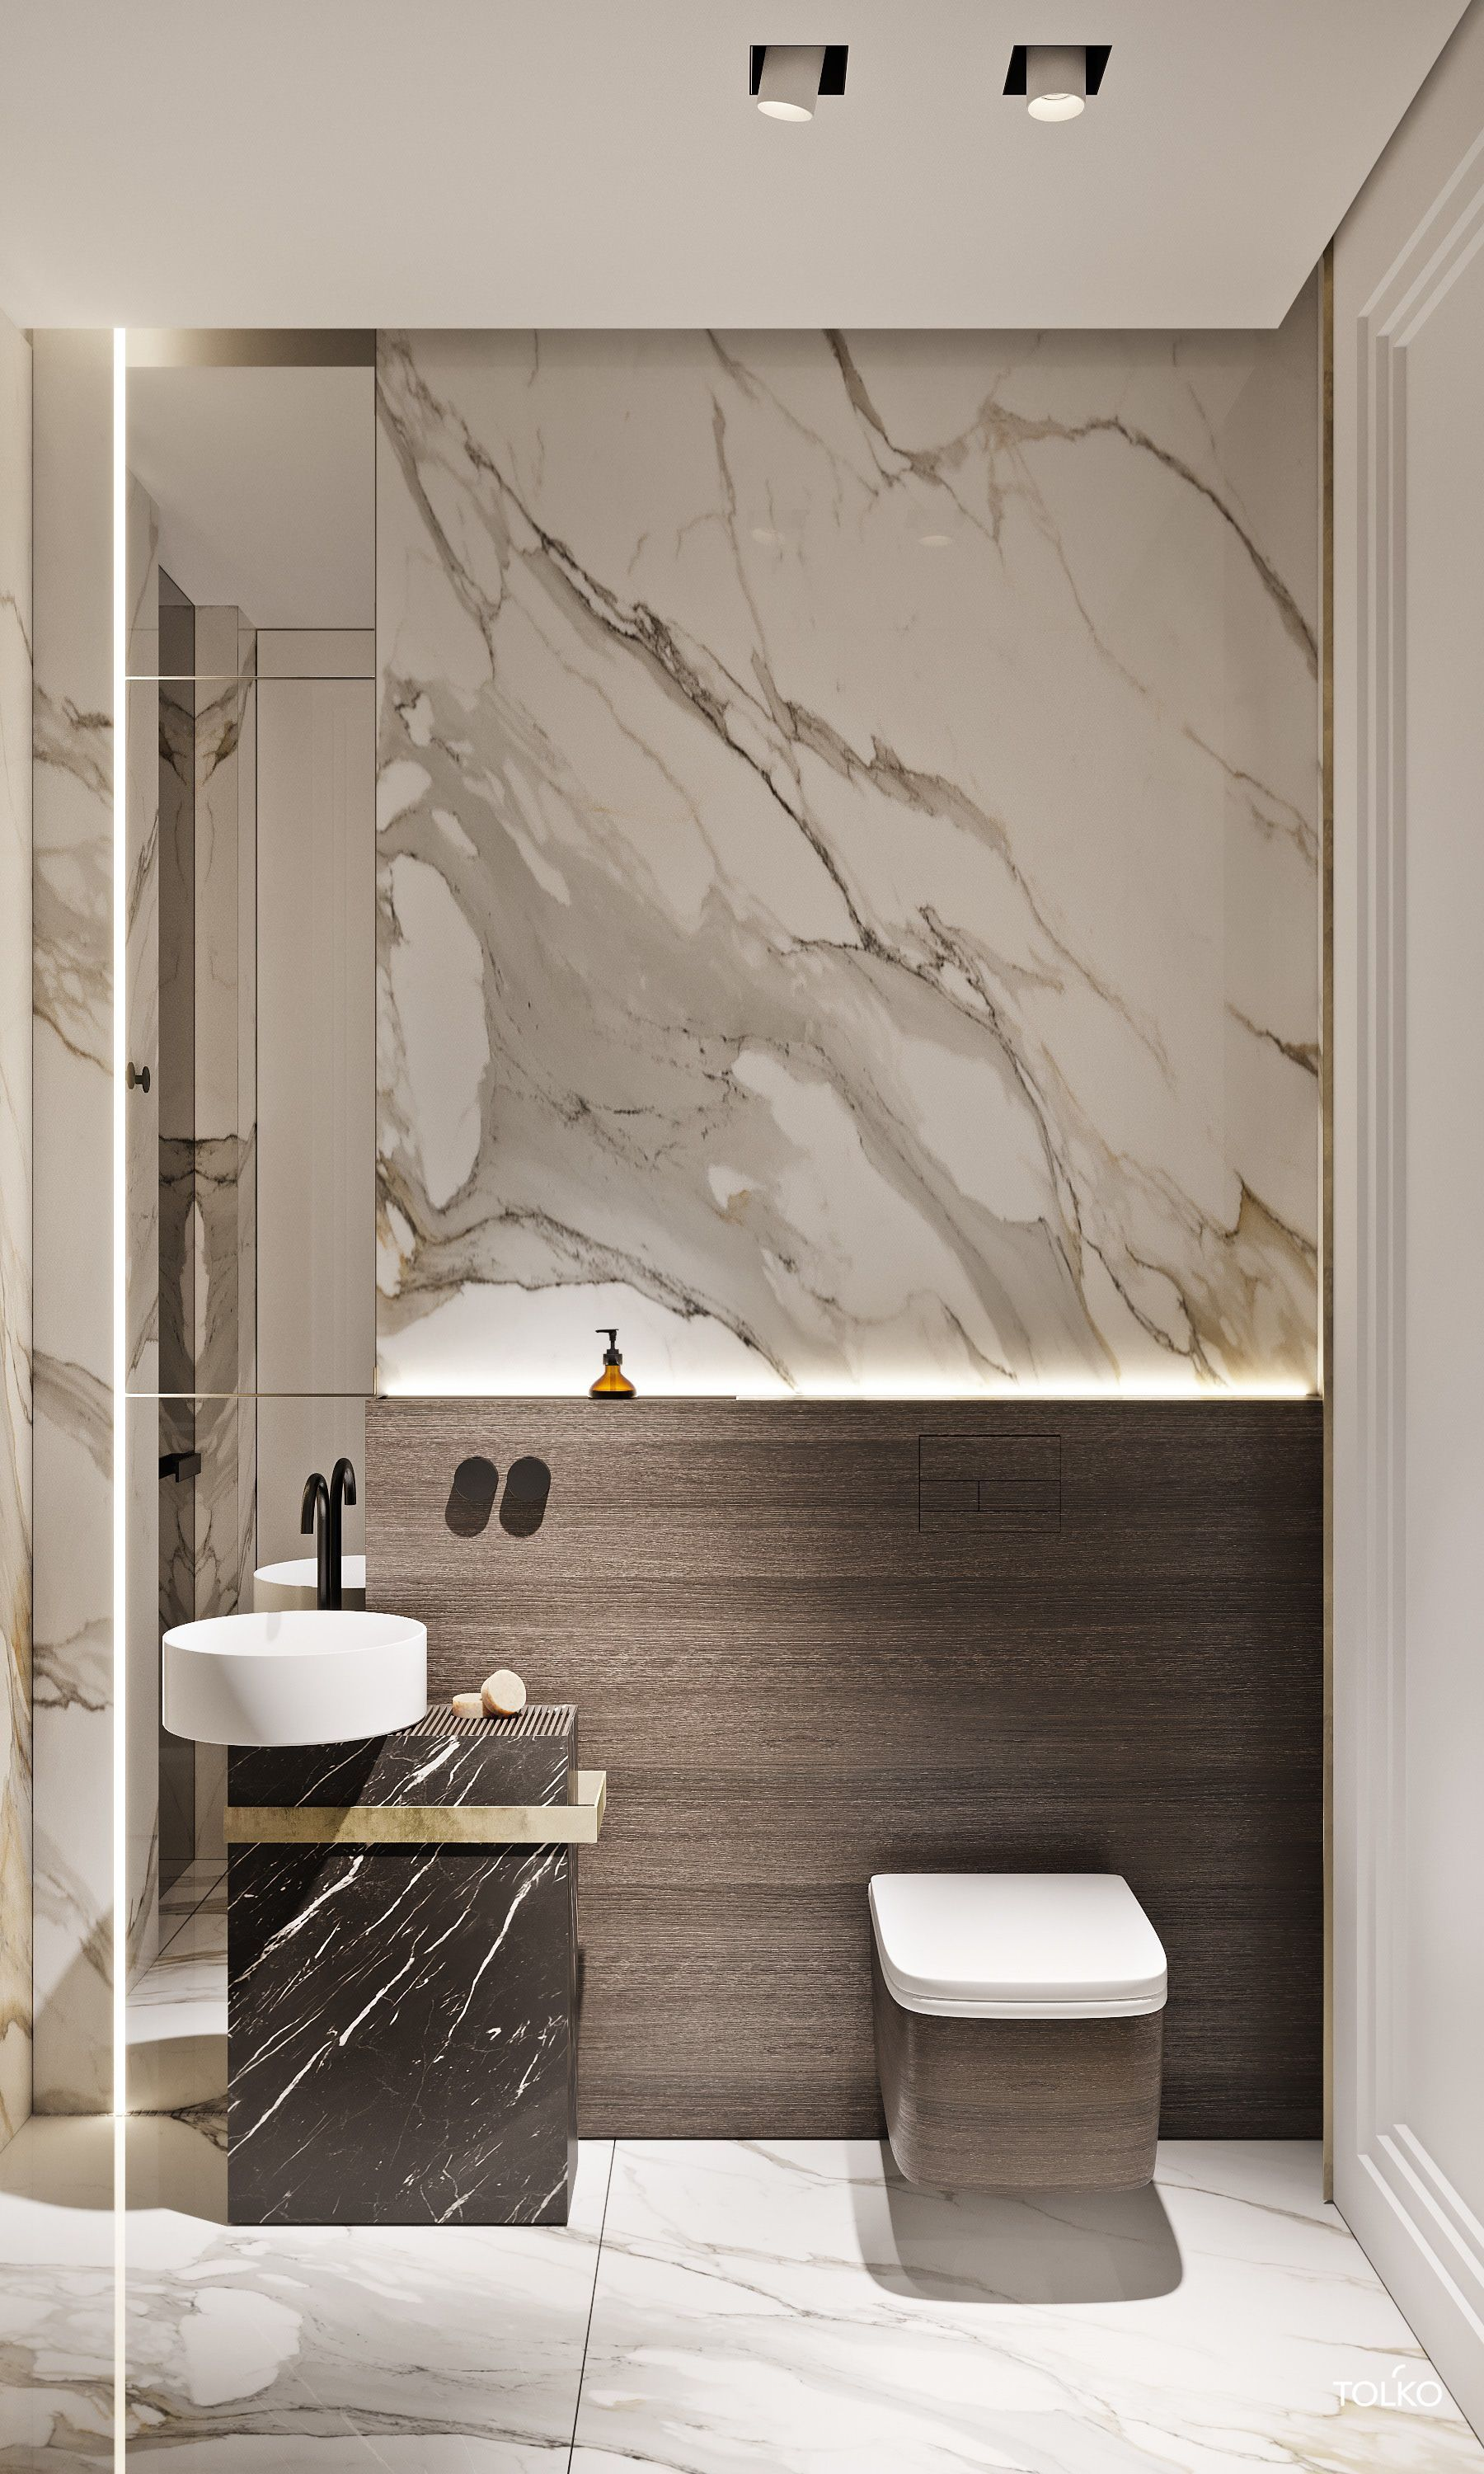 Working On A Bathroom Project We Can Help You With Some Marble Inspirations Discover More Luxury Bathroom Master Baths Guest Bathroom Design Modern Bathroom